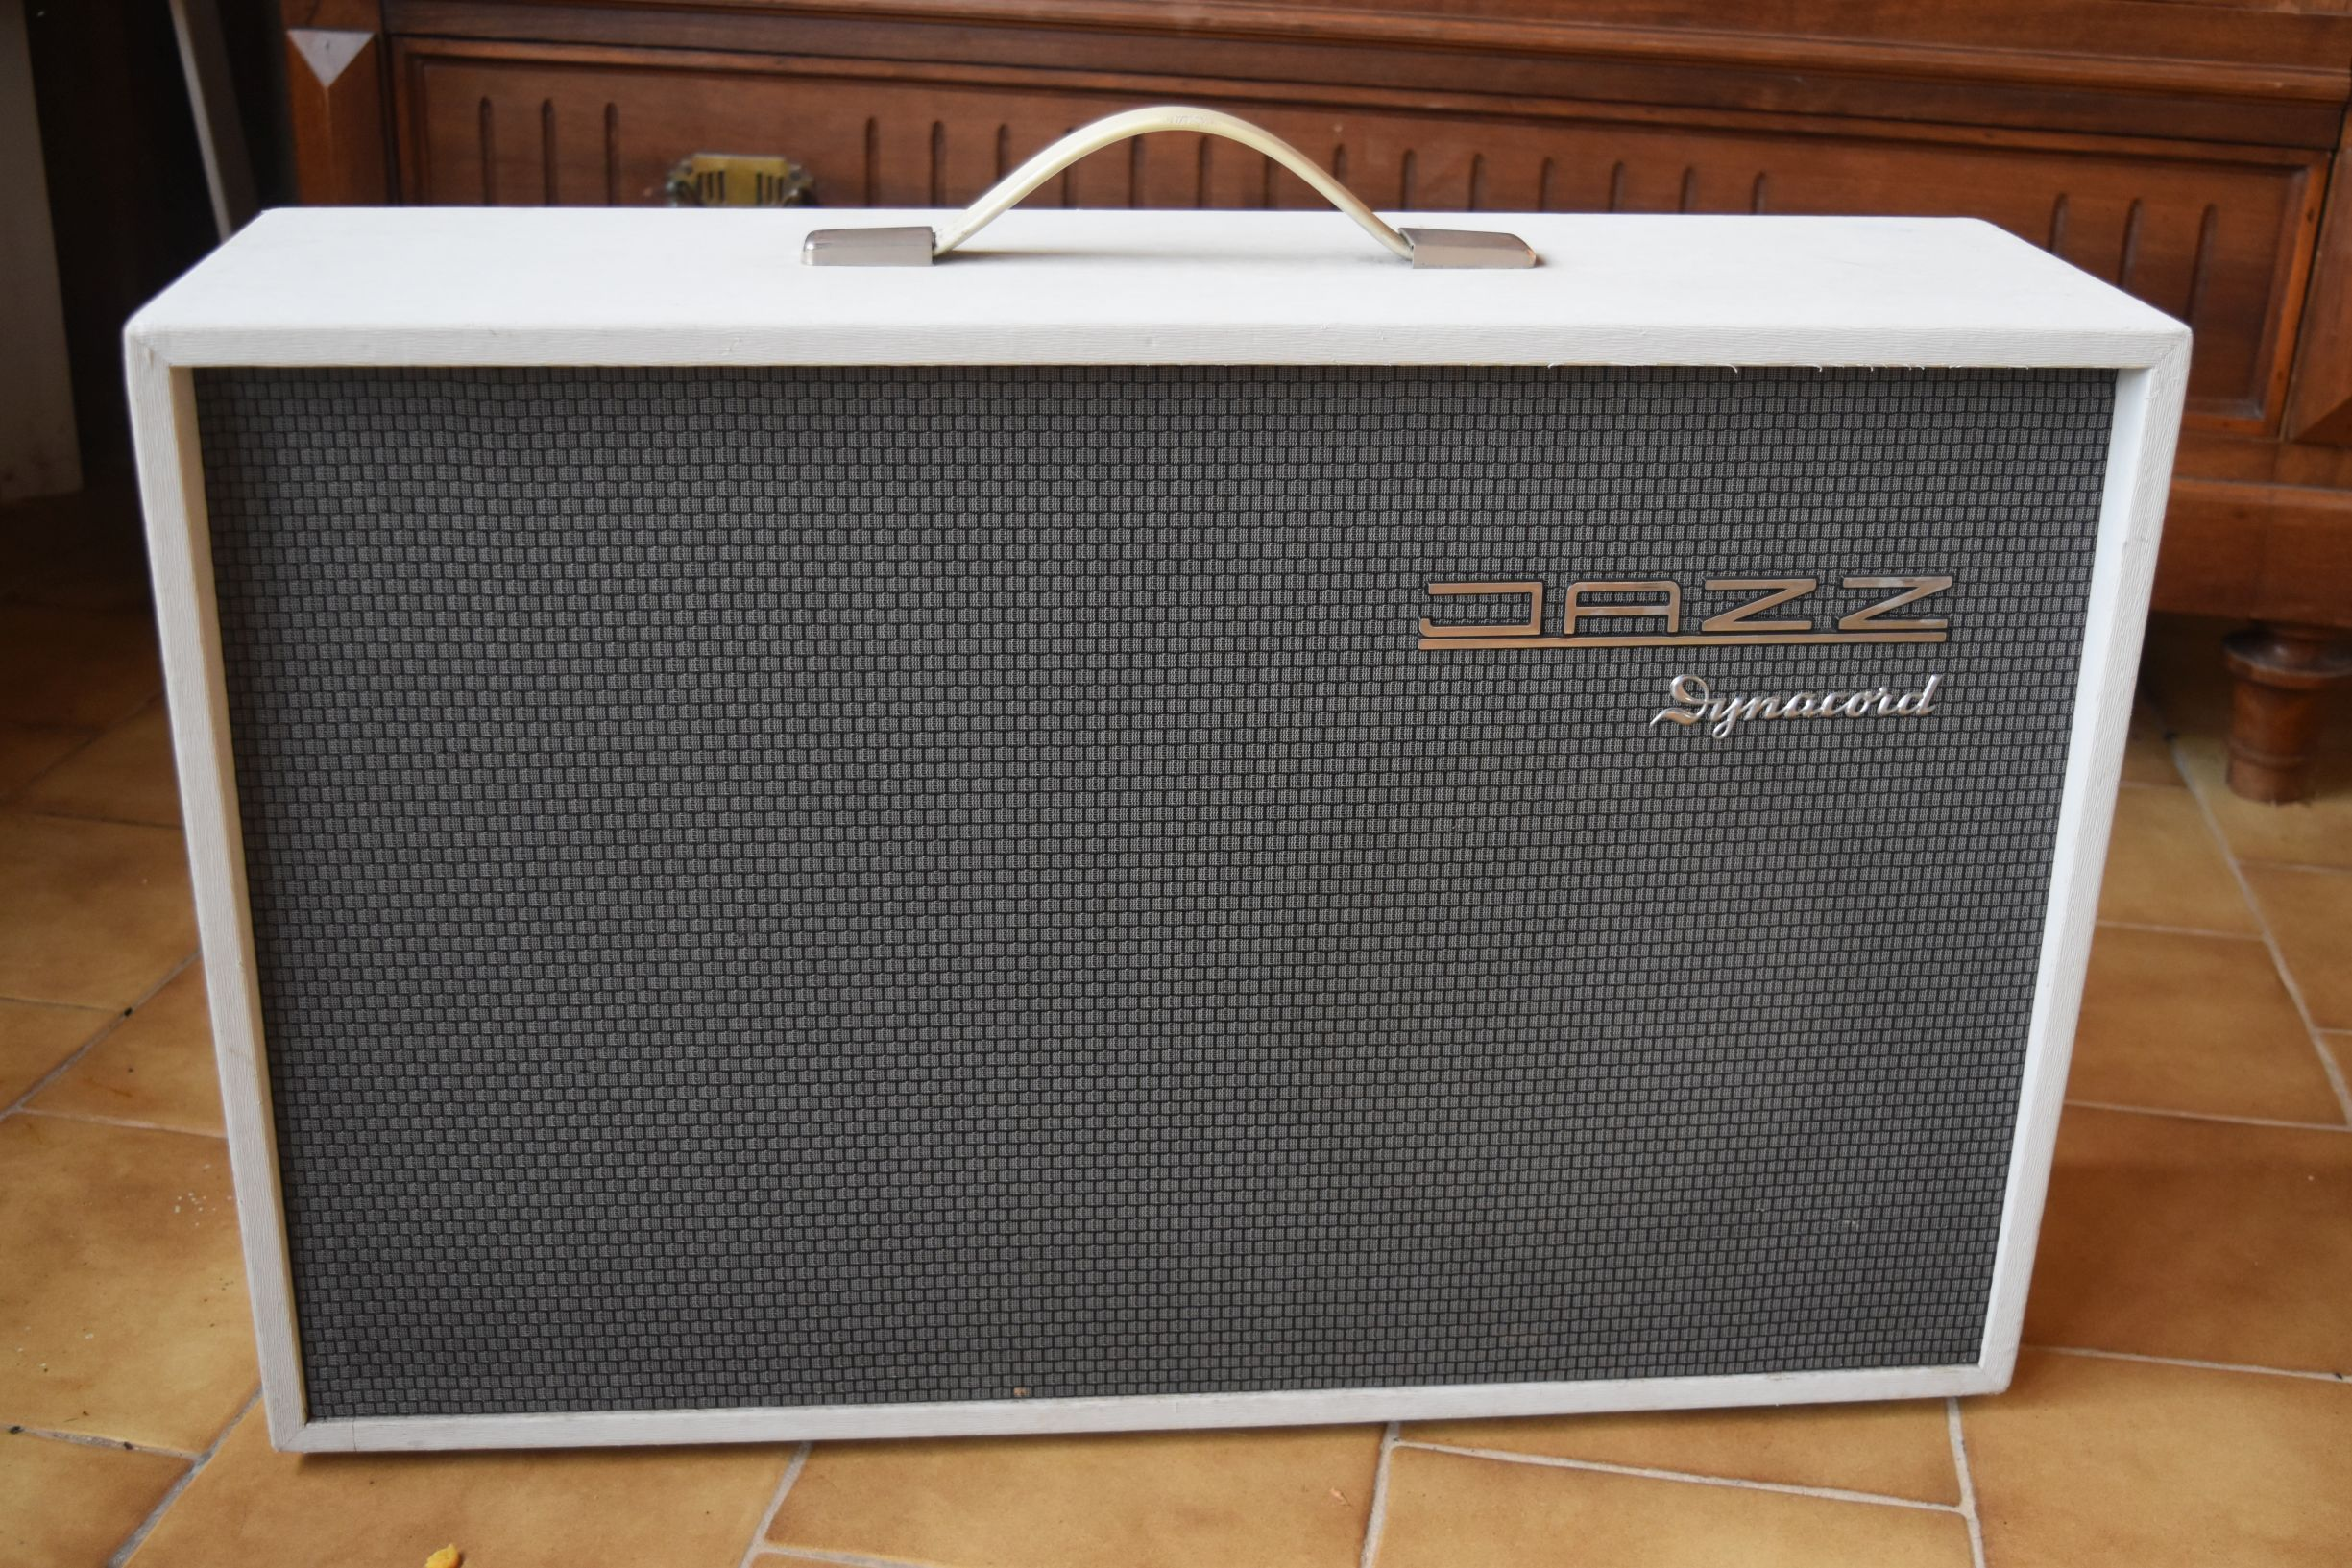 Jazz Dynacord Jazz Audiofanzine Guitar Amp Amp Bass Amps